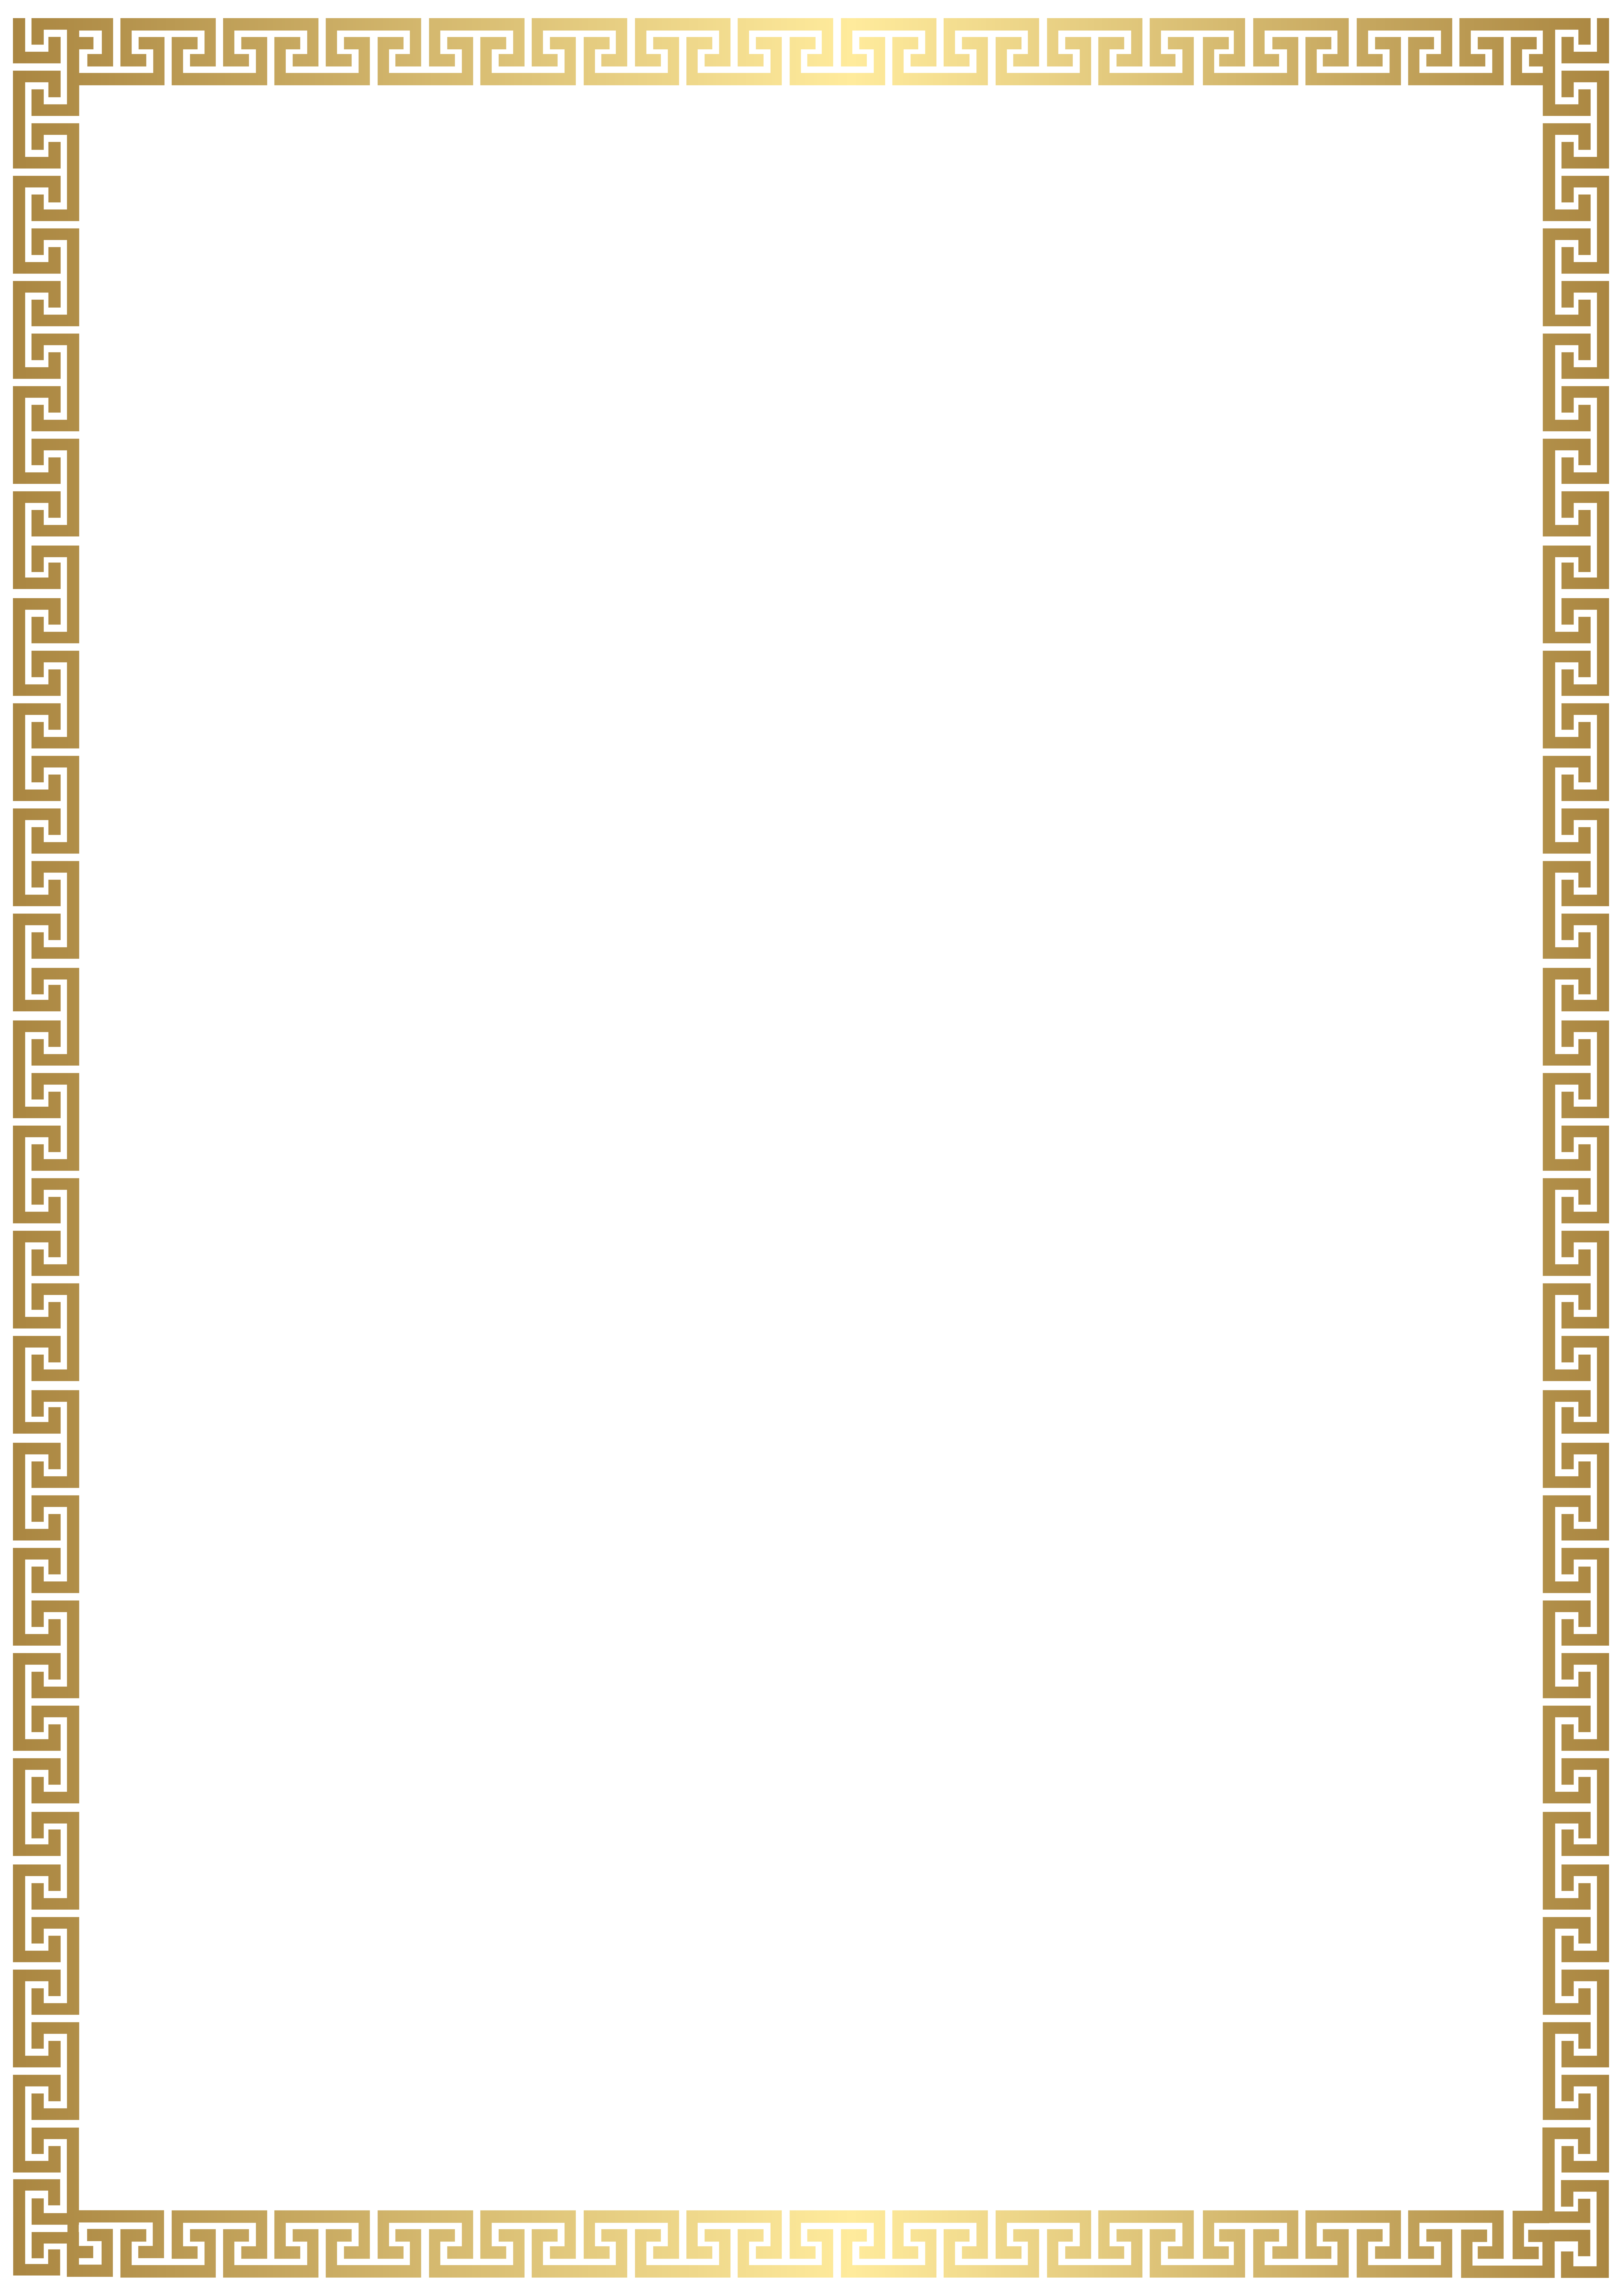 Download Golden Deco Gold Border Transparent Rectangle Clipart PNG.